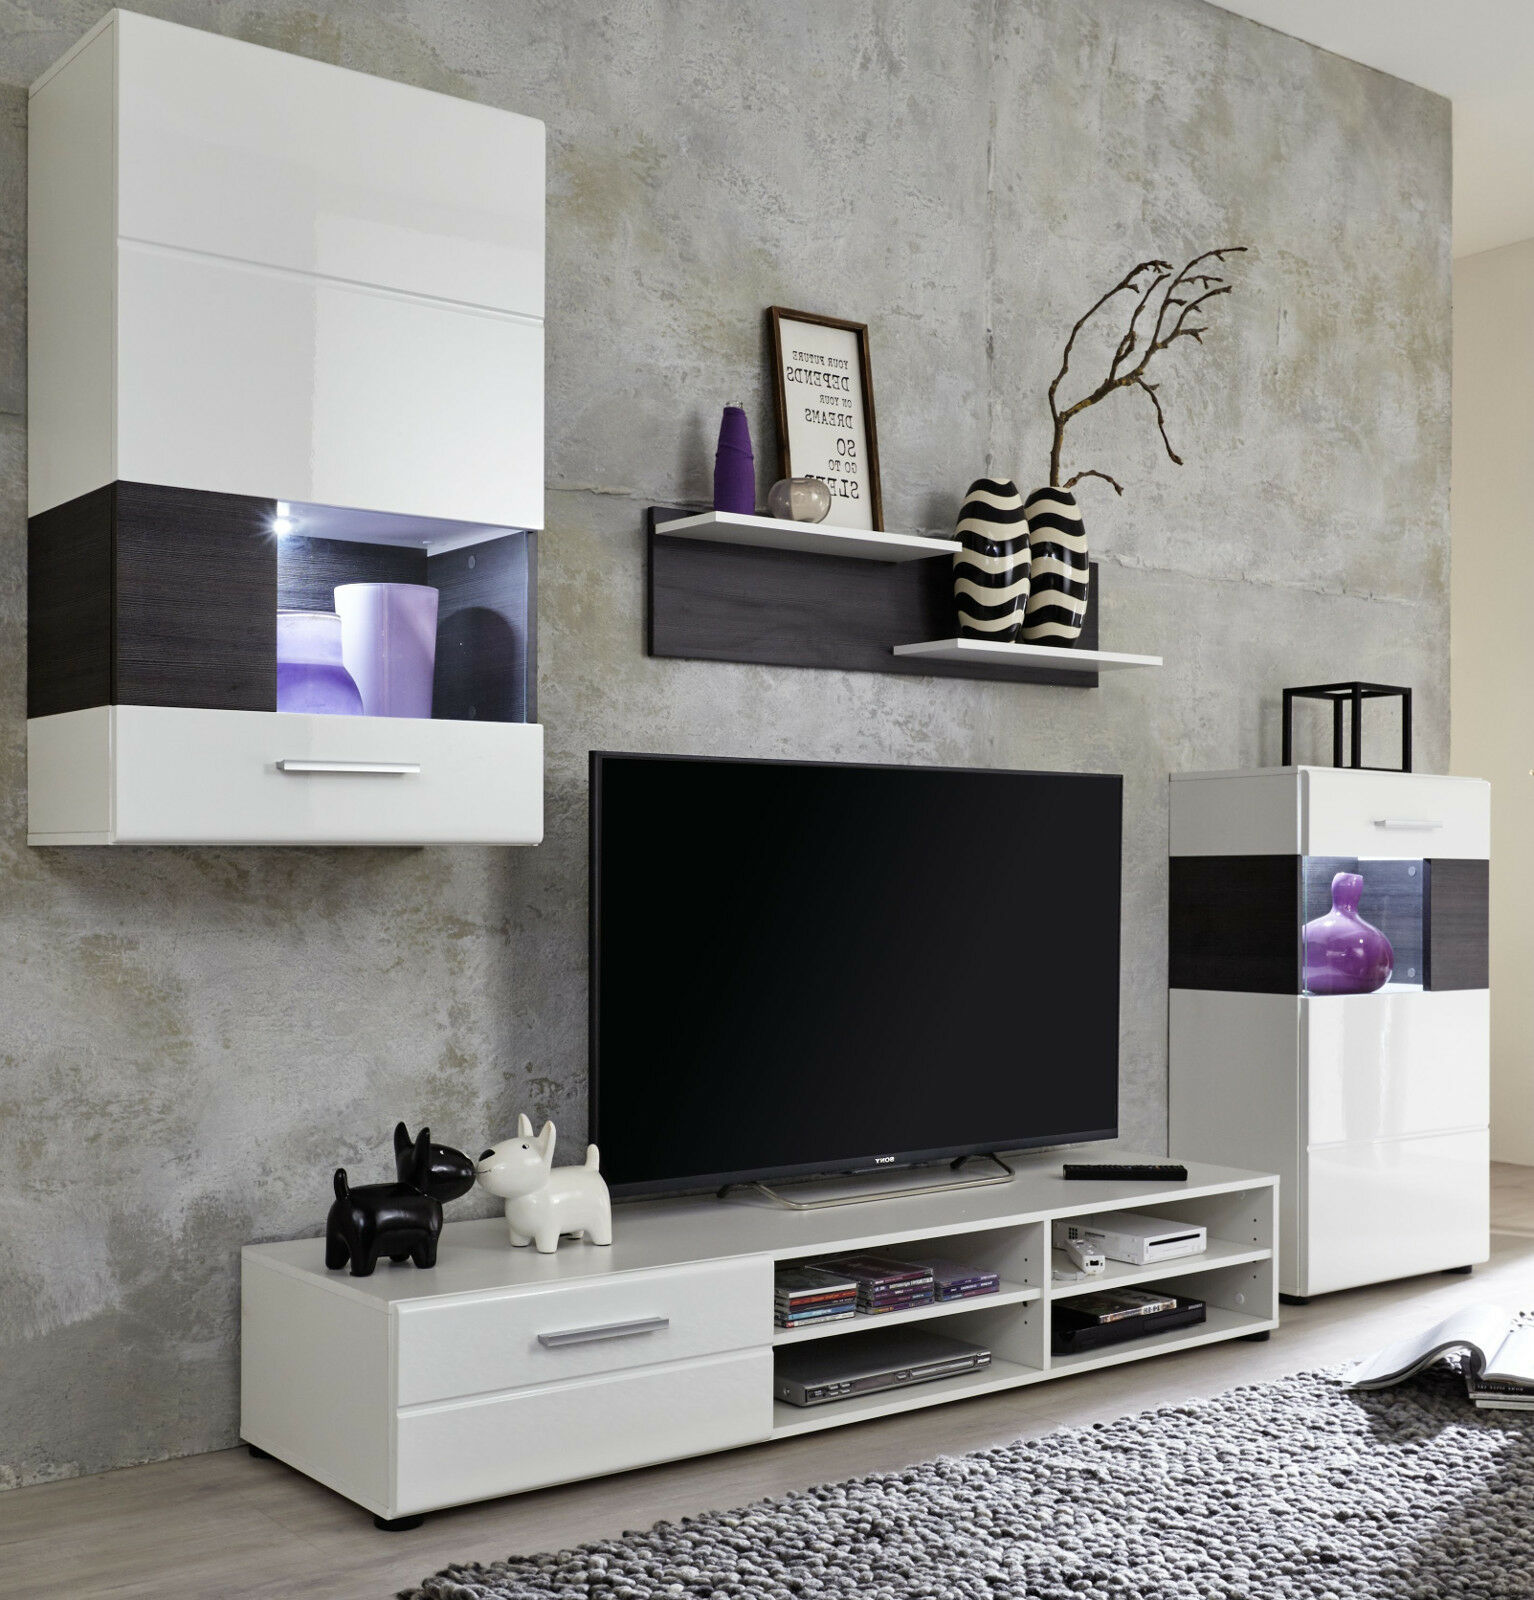 wohnwand schrankwand wei hochglanz pinie braun tv schrank anbauwand rosalie eur 274 99. Black Bedroom Furniture Sets. Home Design Ideas